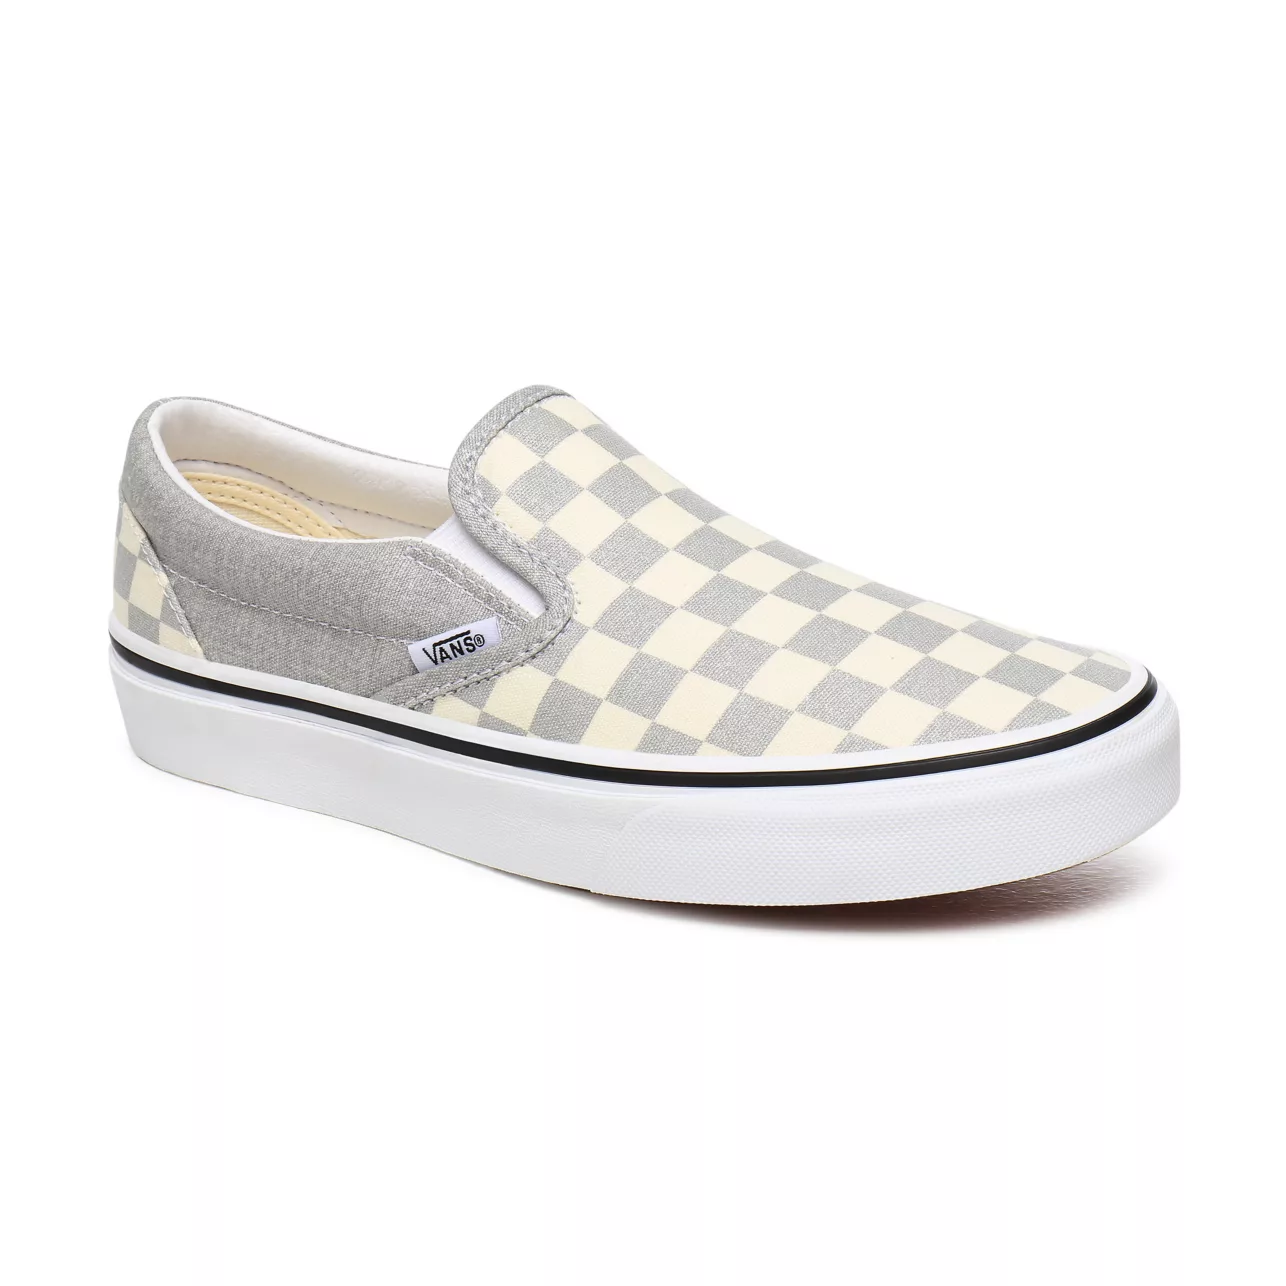 SHOES VANS CLASSIC SLIP-ON (CHECKERBOARD) SILVER/TRUE WHITE